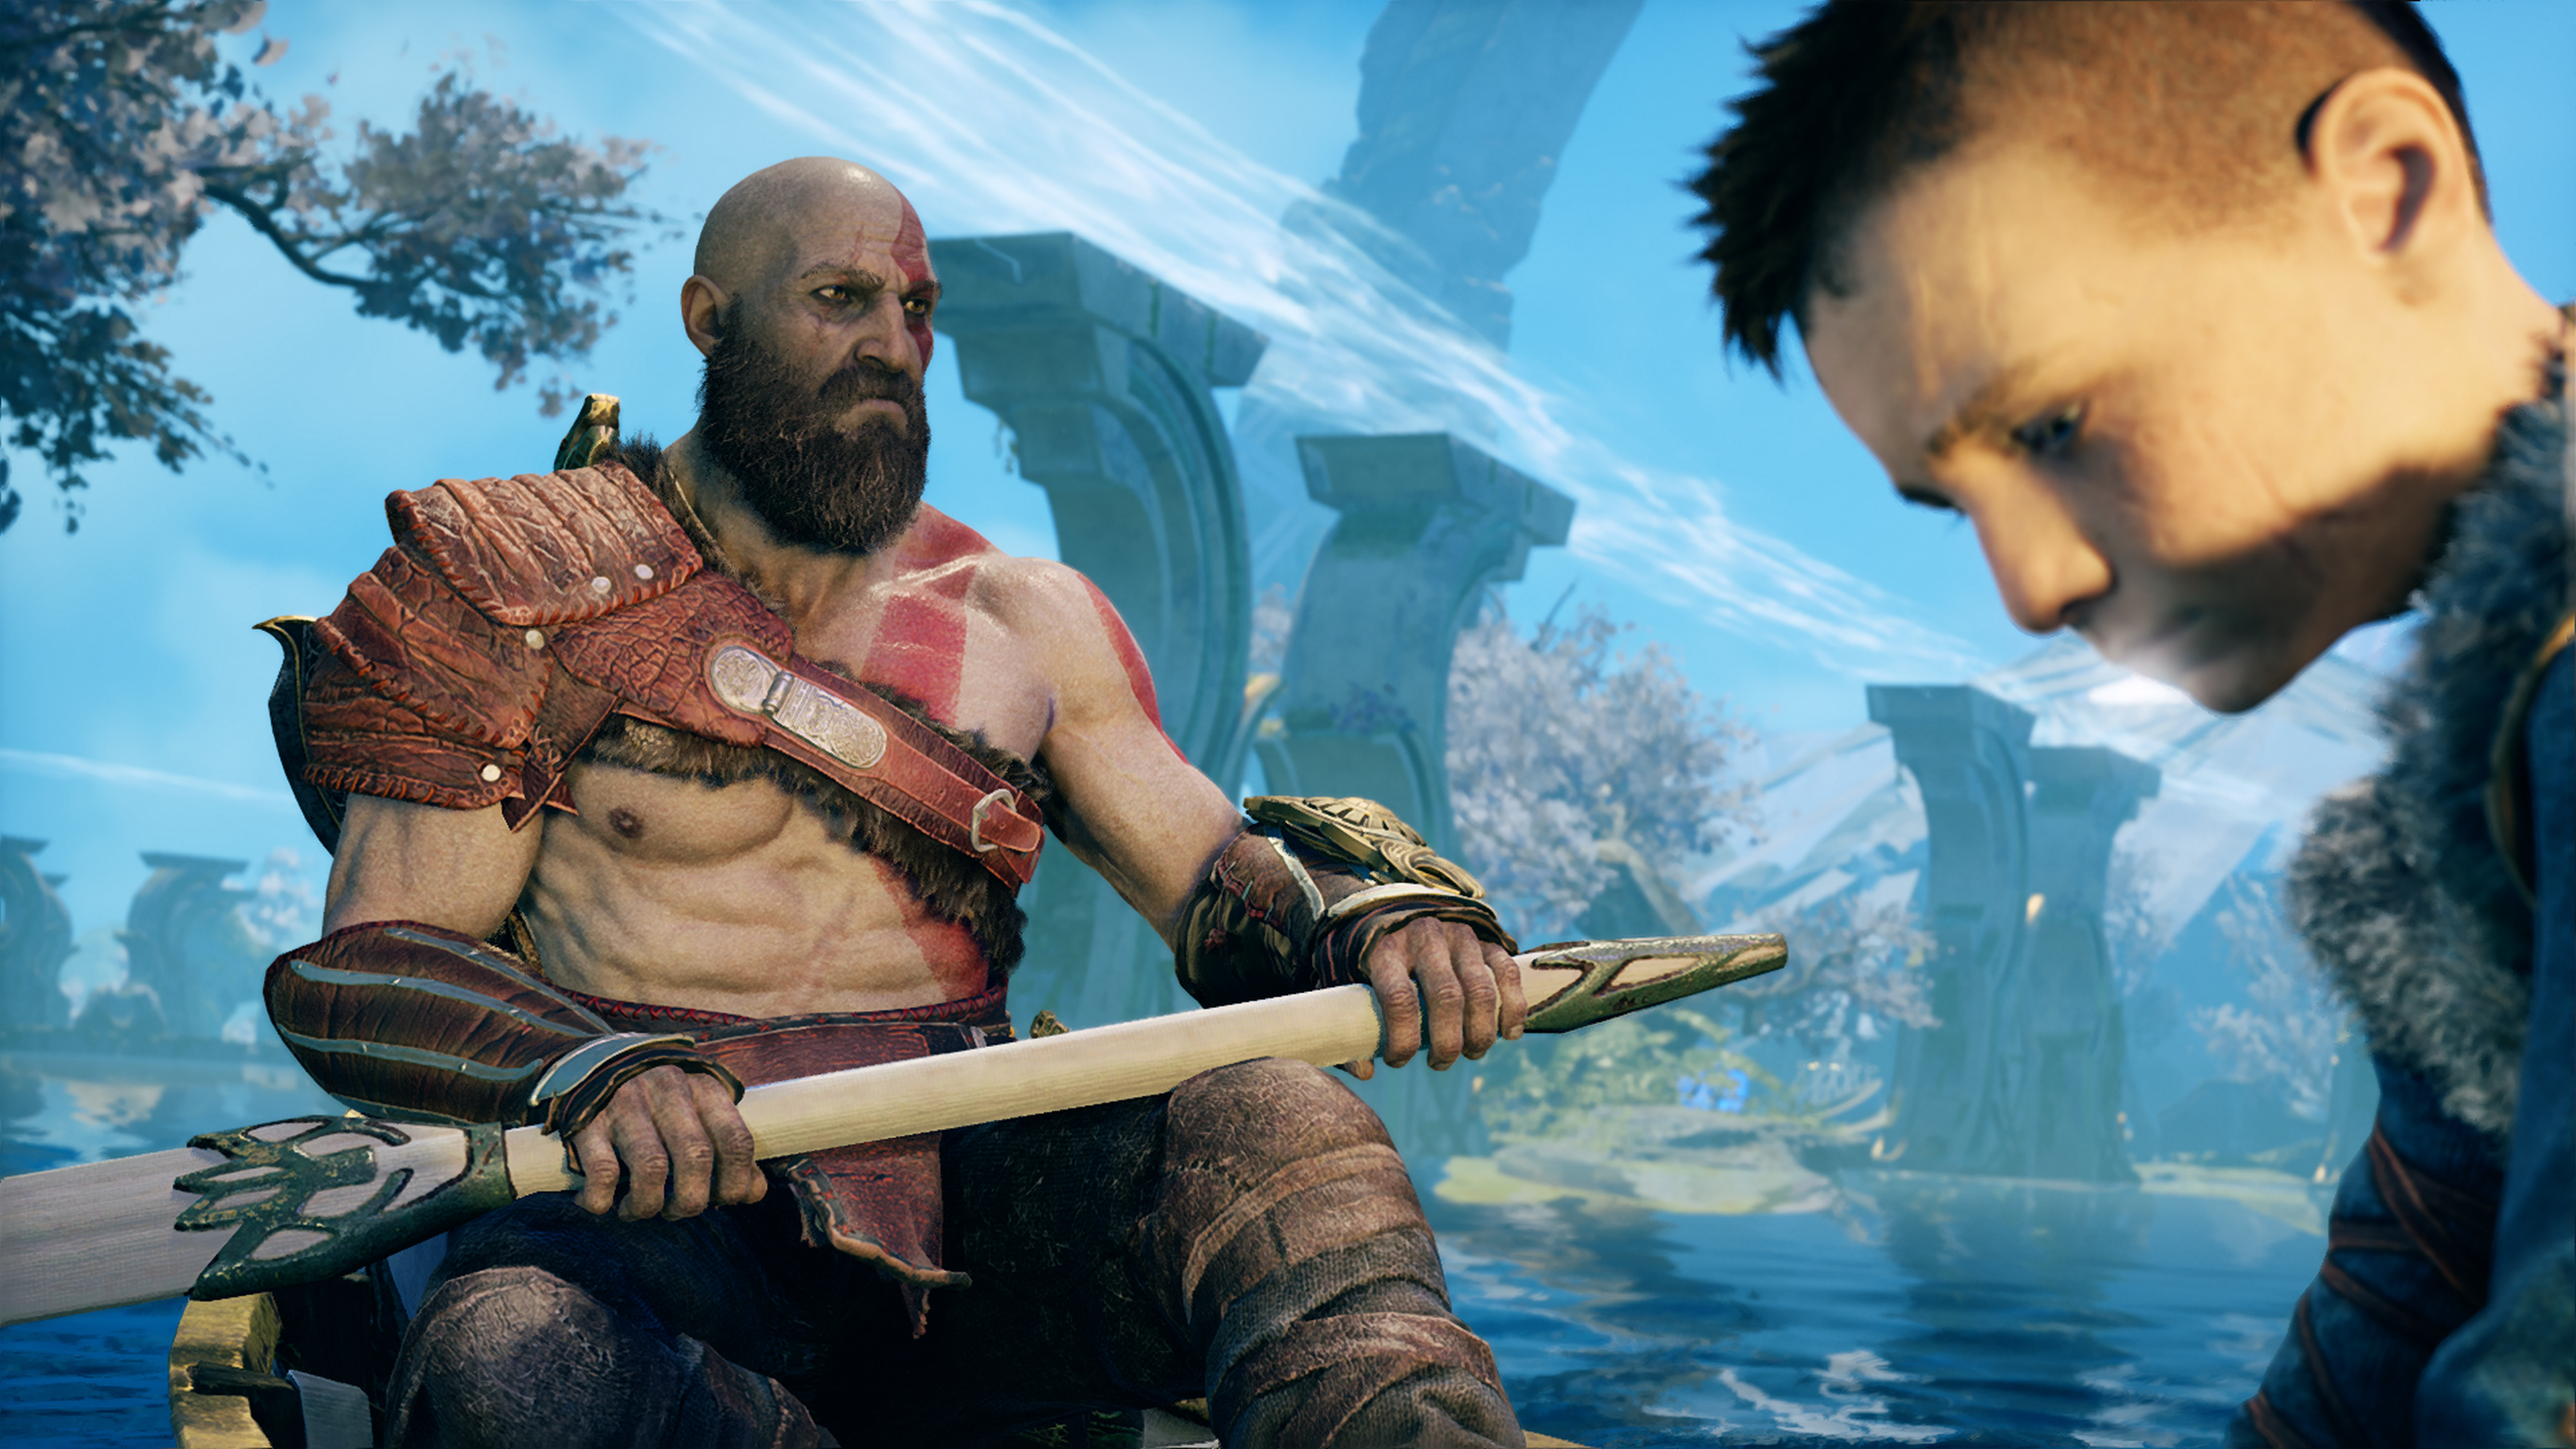 Pictures Of God Of War S Video Review Is Here For You To